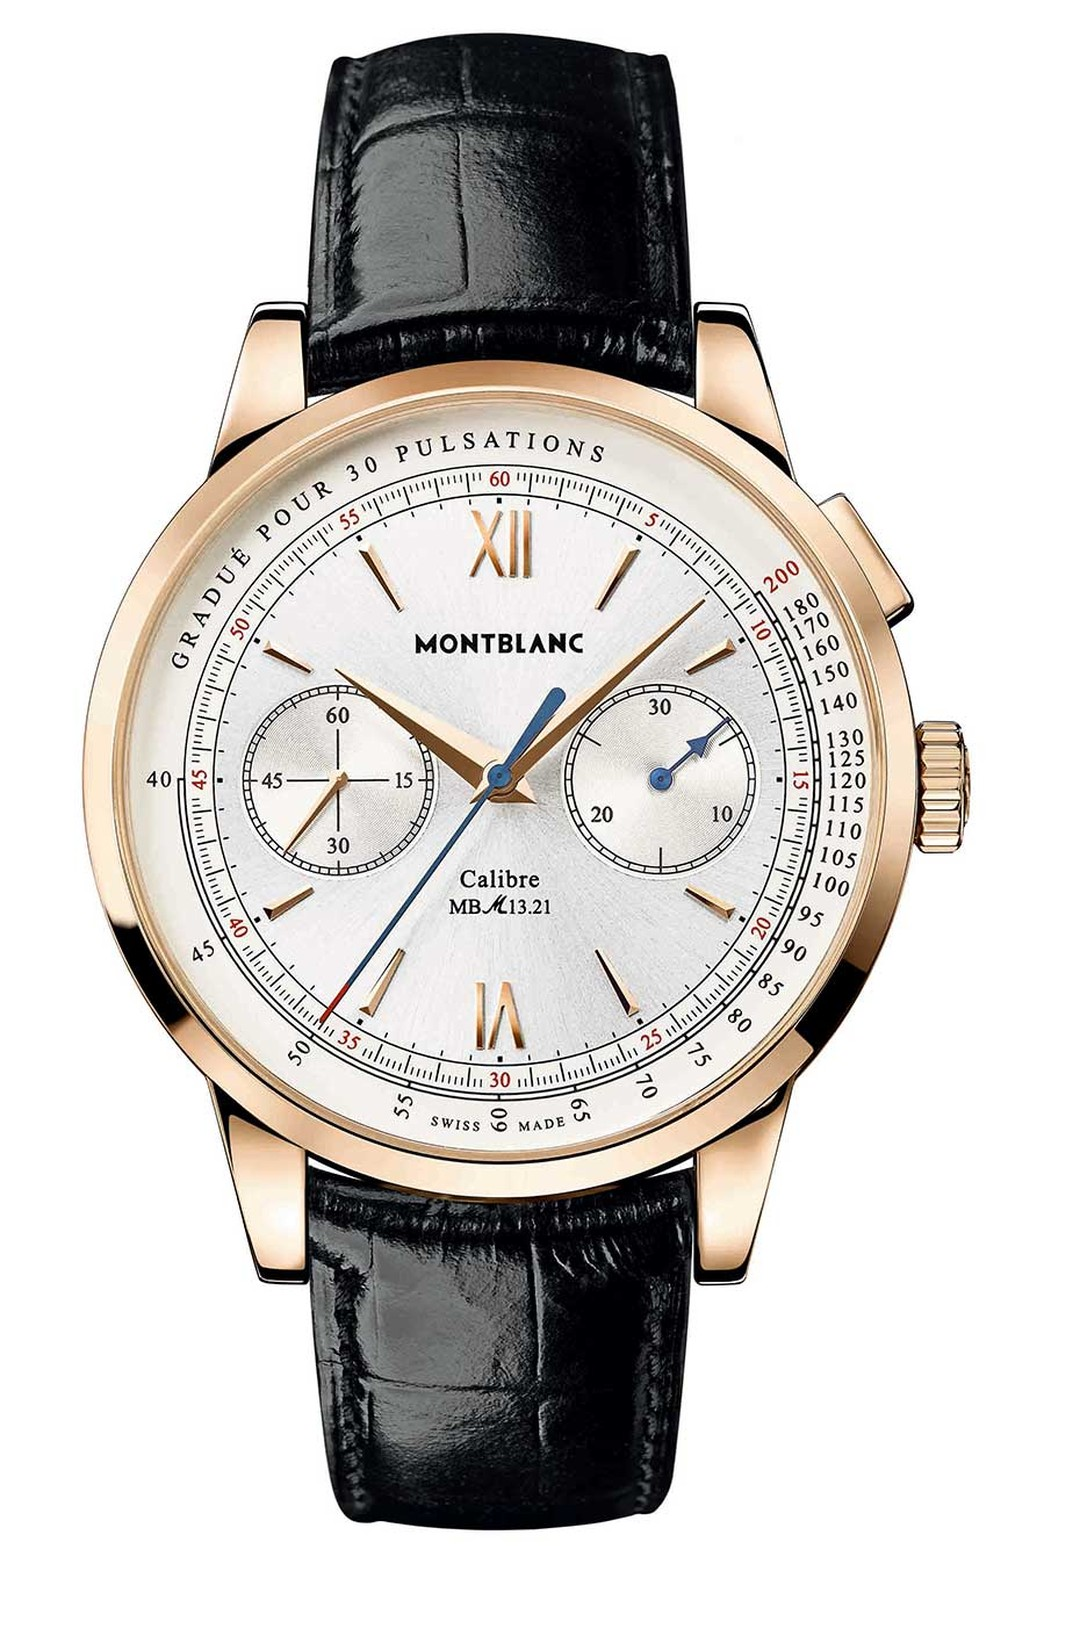 Montblanc is drawing the crowds with its complicated yet accessibly priced Meisterstück collection.